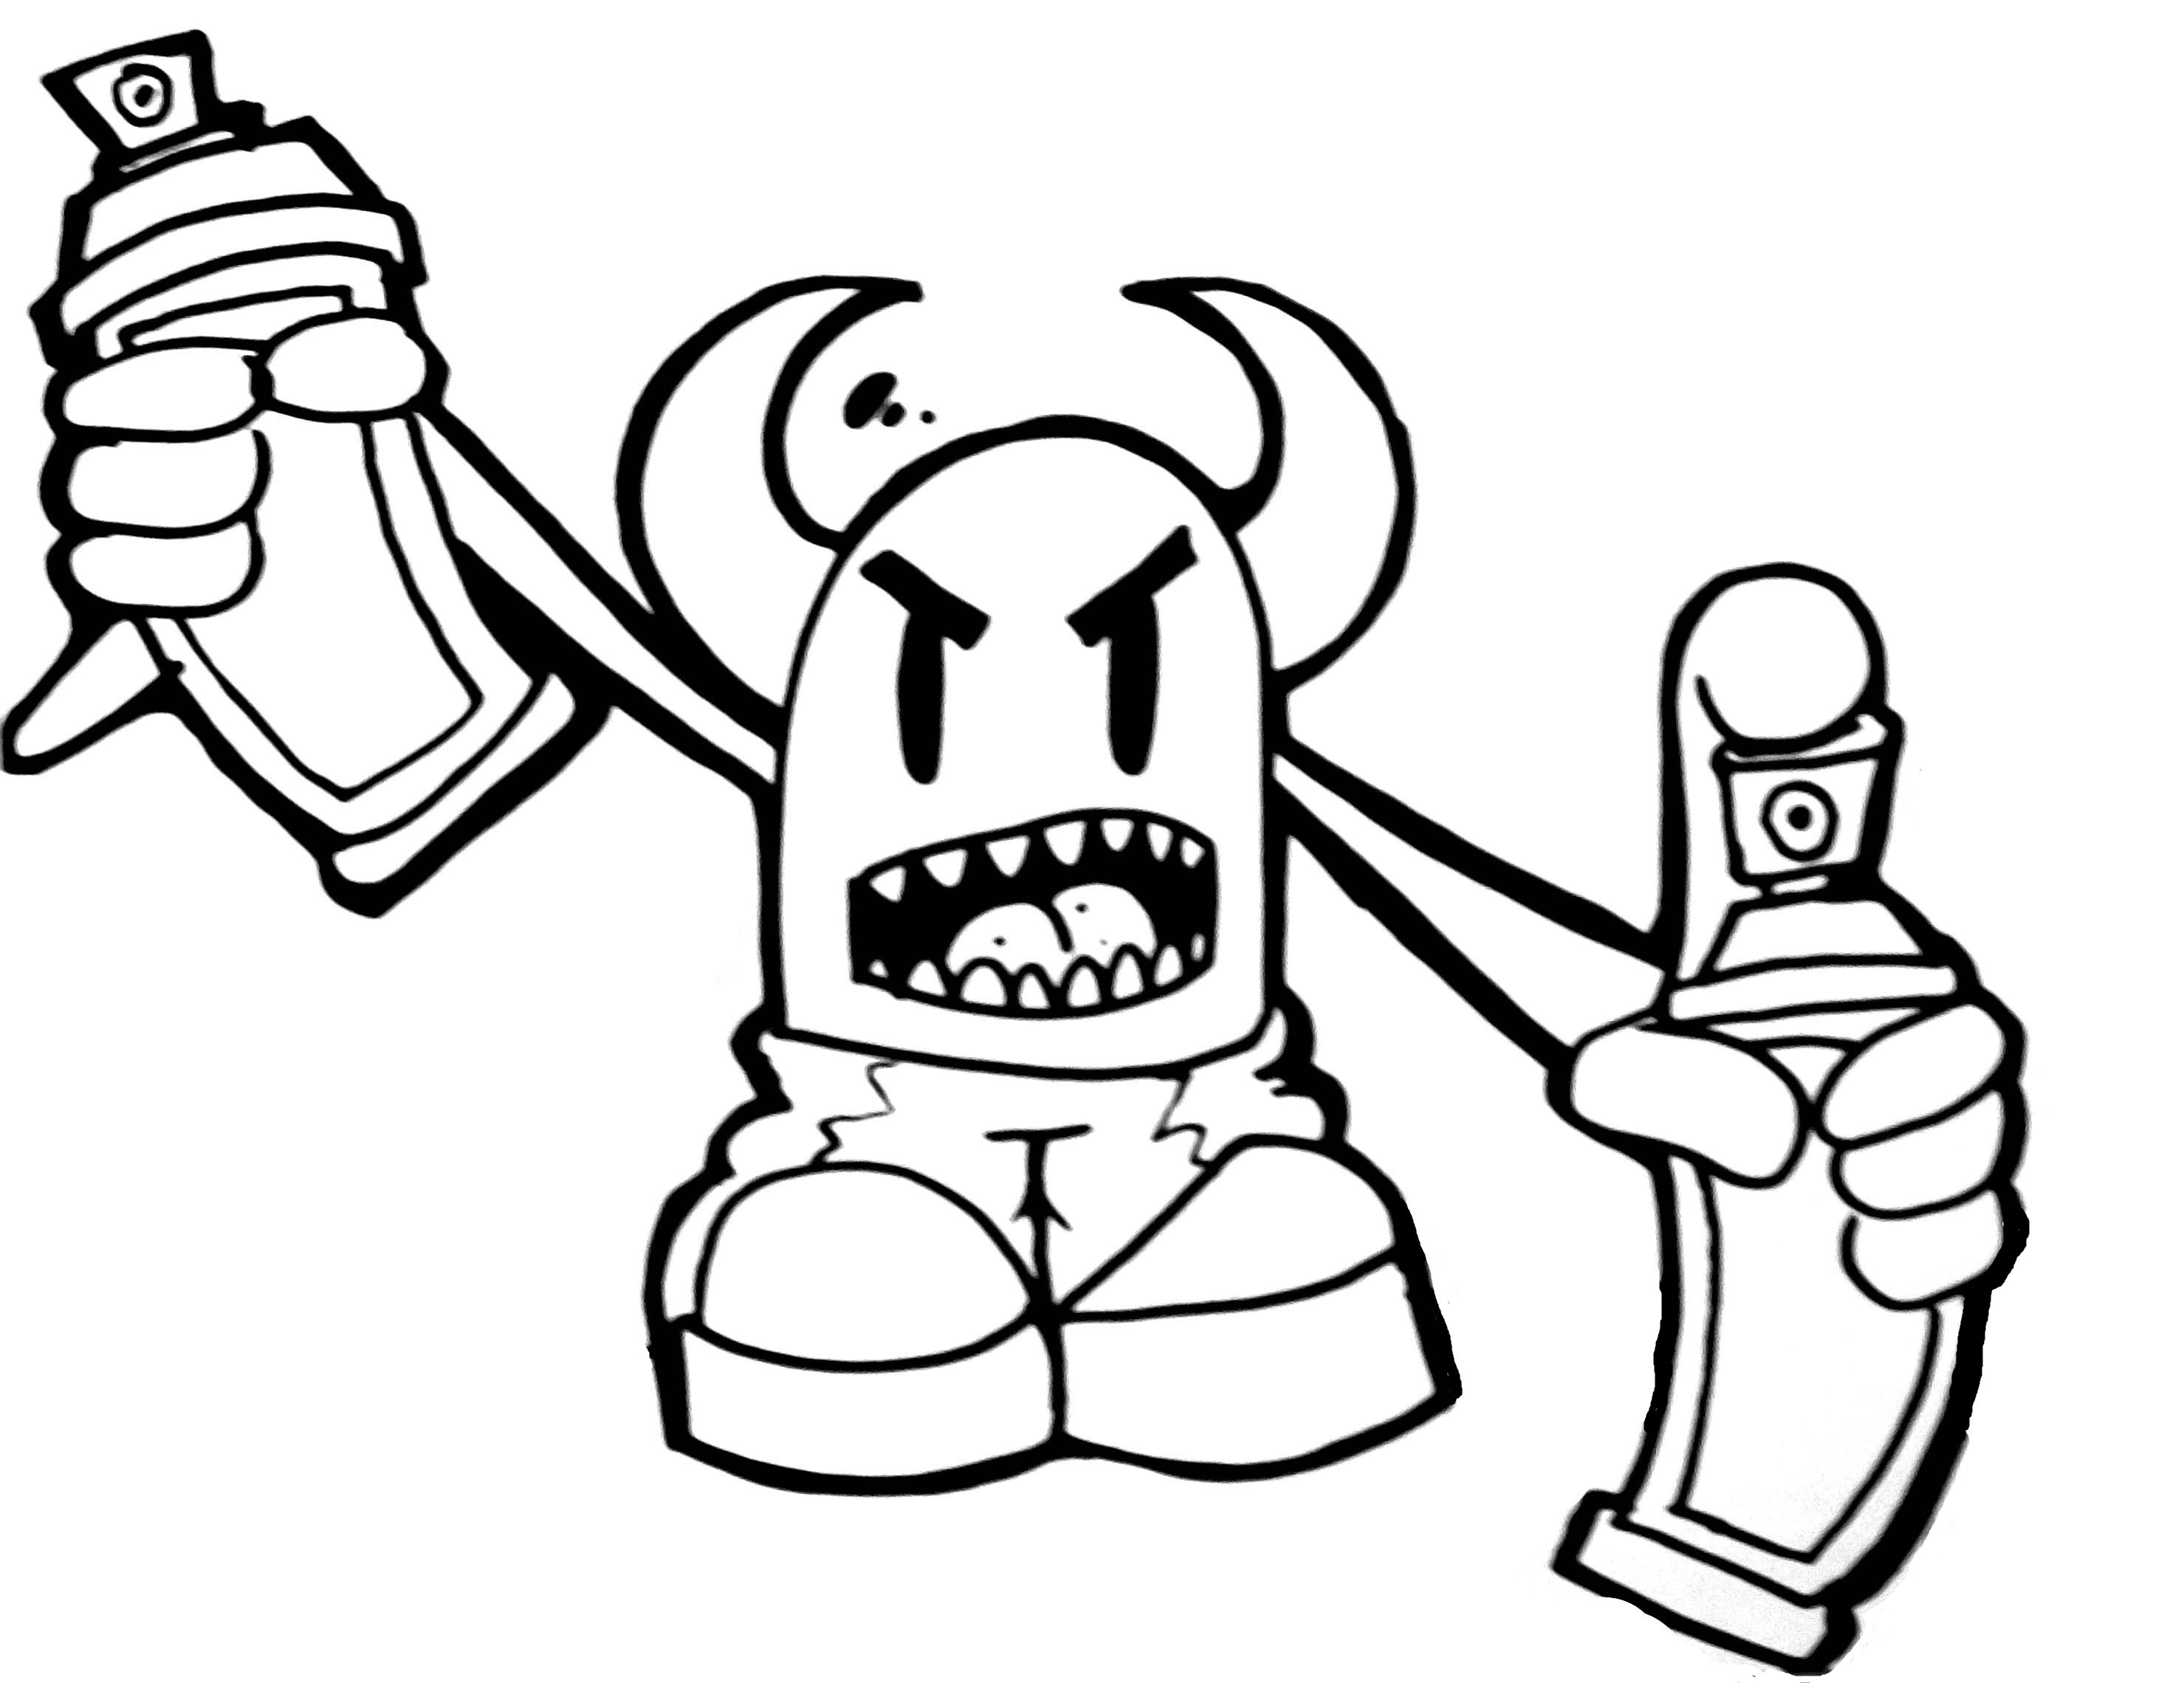 2958x2280 Graffiti Drawing Of Spray Can An Mickey Mouse How To Draw Skull